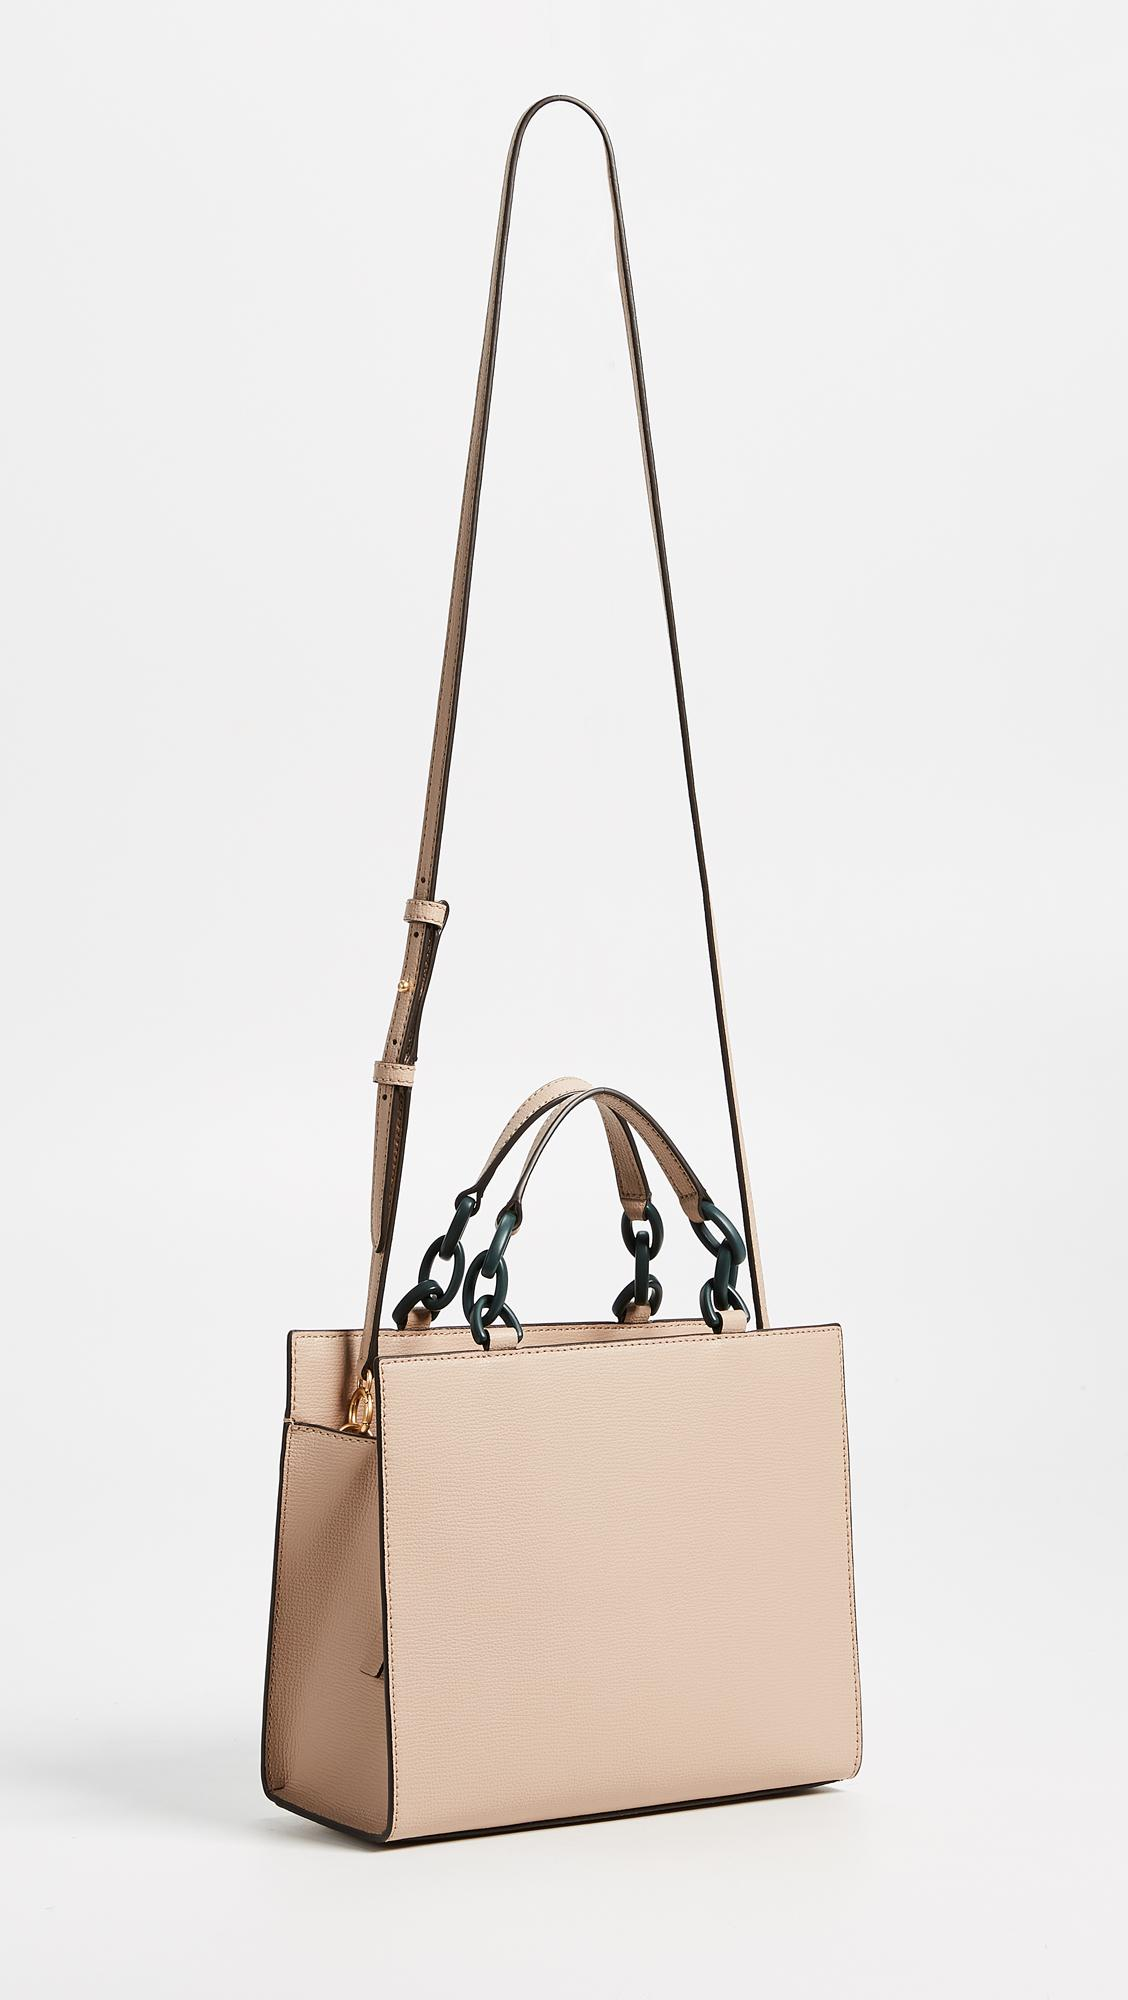 db2b6581cca6 Lyst - Tory Burch Kira Small Tote in Natural